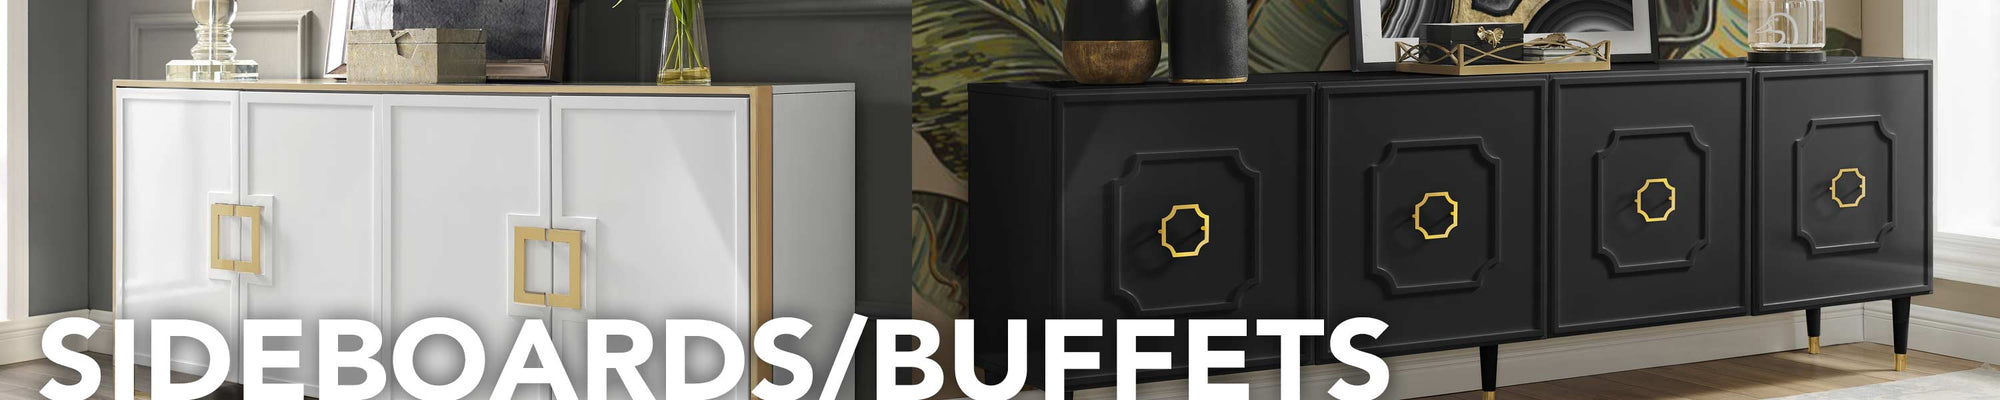 Sideboards / Buffets